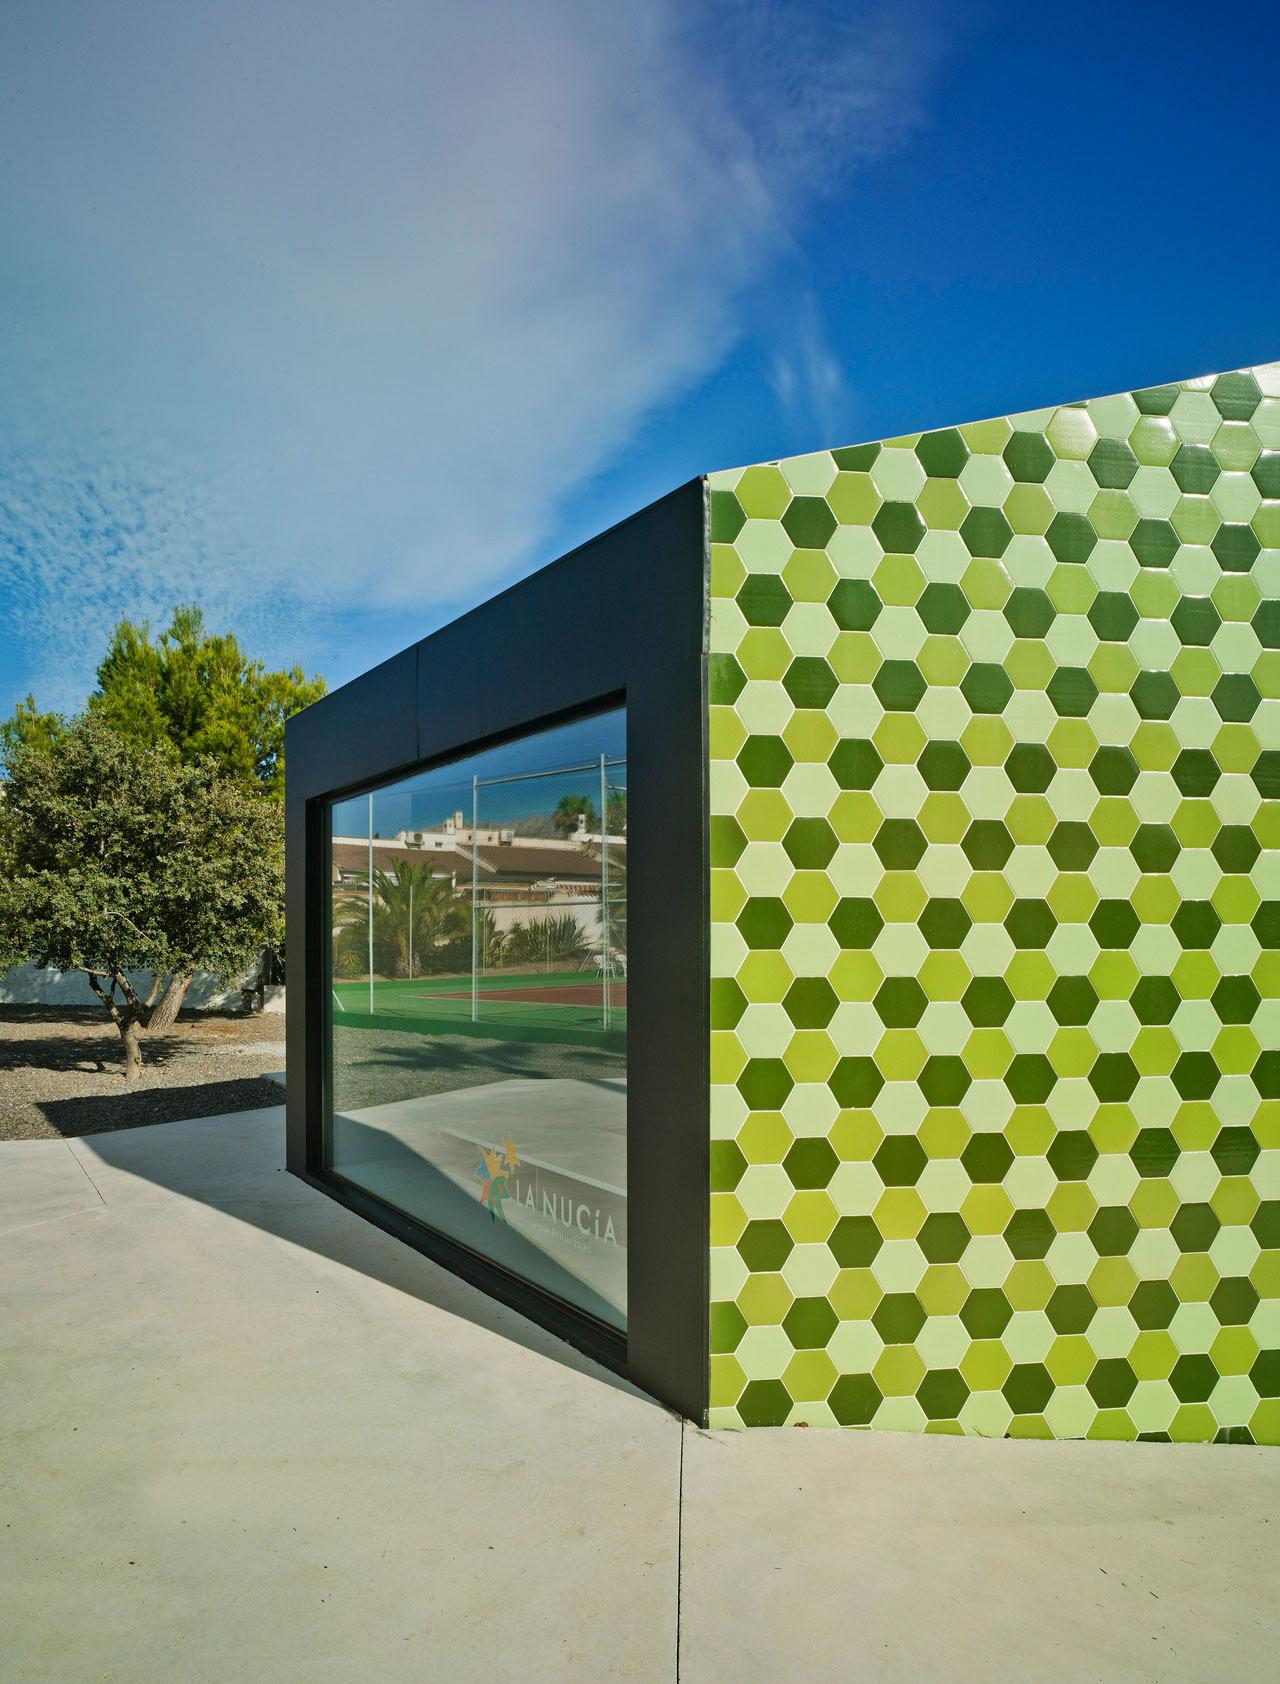 Crystalzoo, awarded the Architizer A+Awards for 'The Administrative Extension in La Nucia' 4